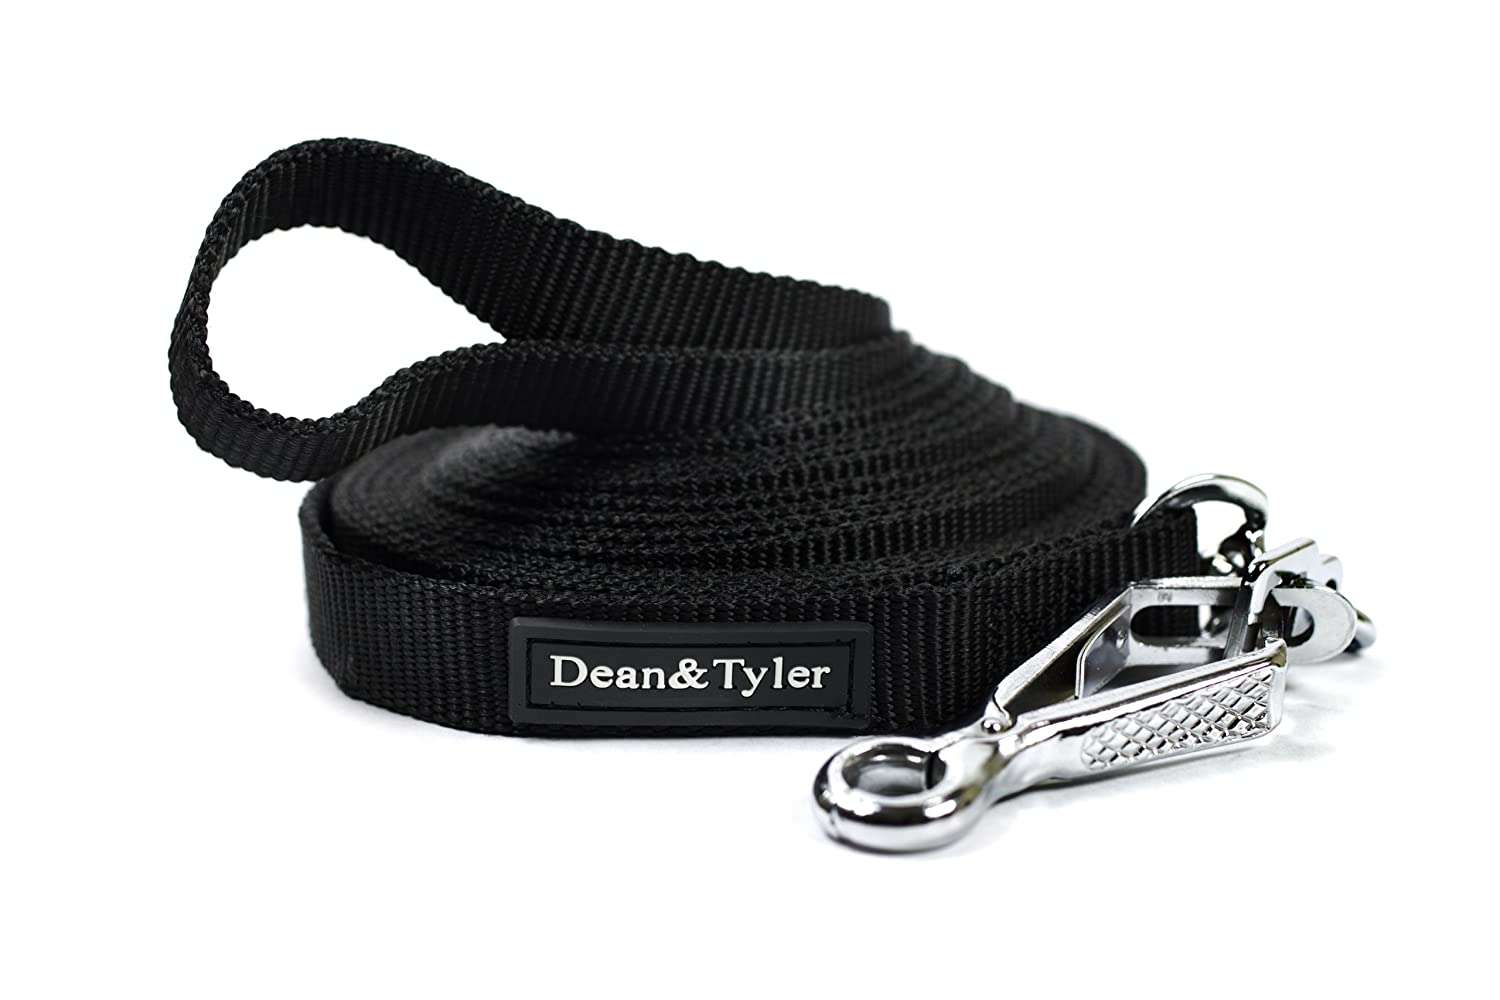 Dean and Tyler DT Track Nylon Dog Tracking Leash, Black 10-Feet by 3 4-Inch with Herm Sprenger Quick Release Hardware